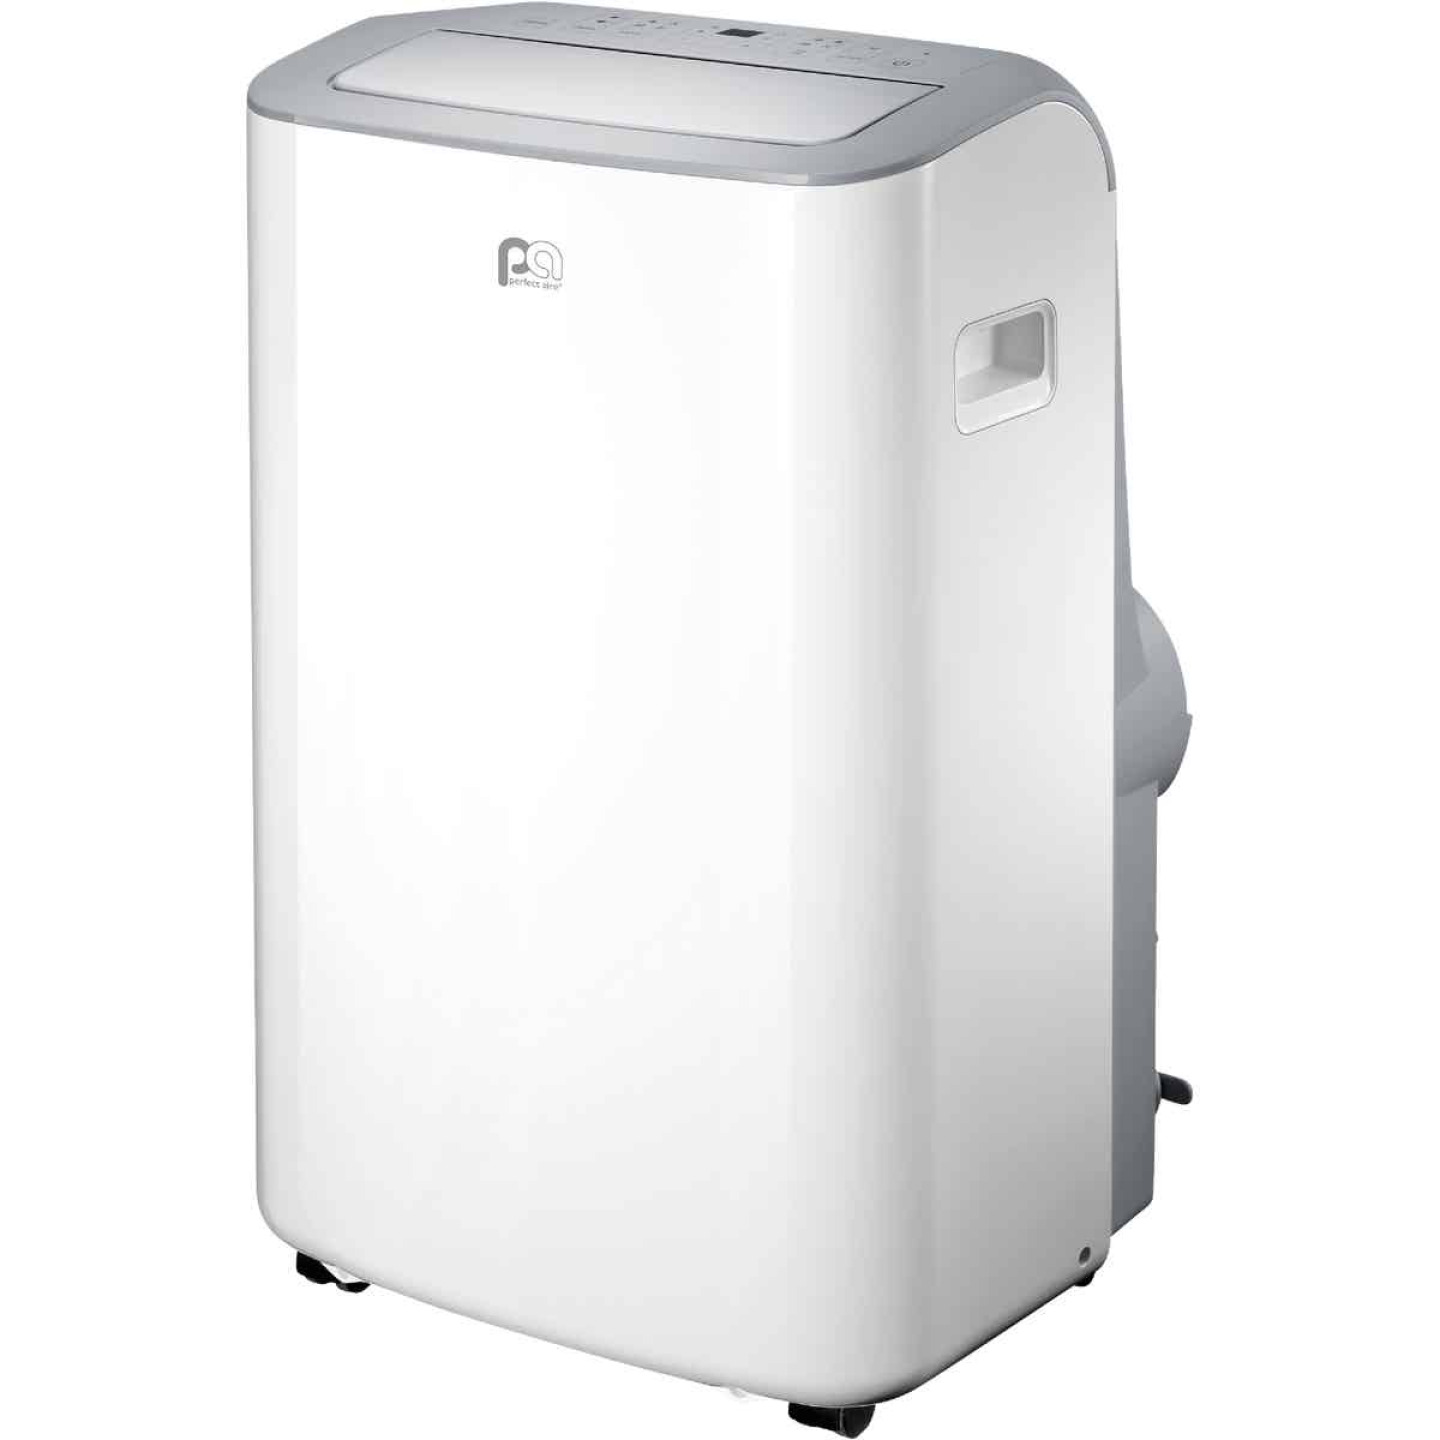 Perfect Aire 14,000 BTU 400 Sq. Ft. Portable Air Conditioner with Heater Image 1